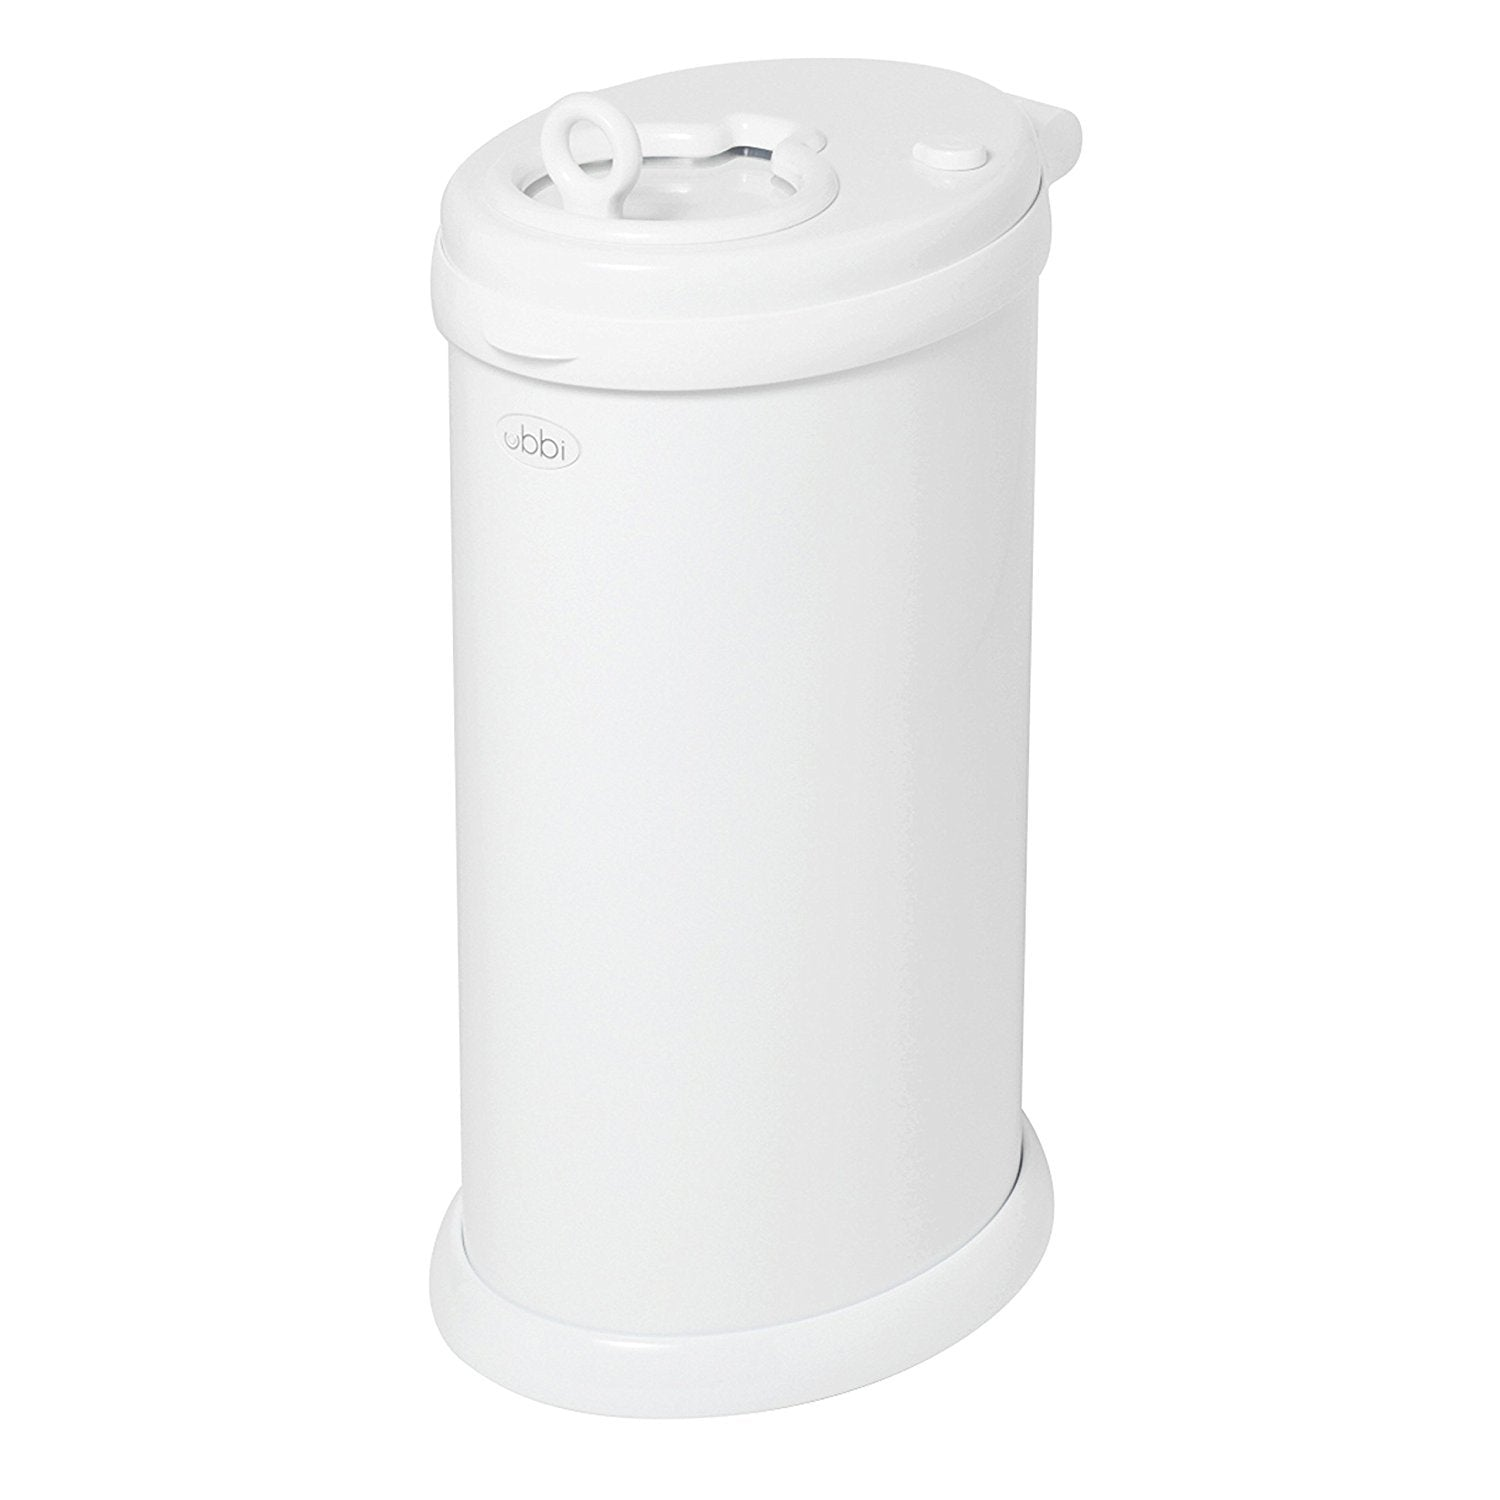 Ubbi Diaper Pail in White